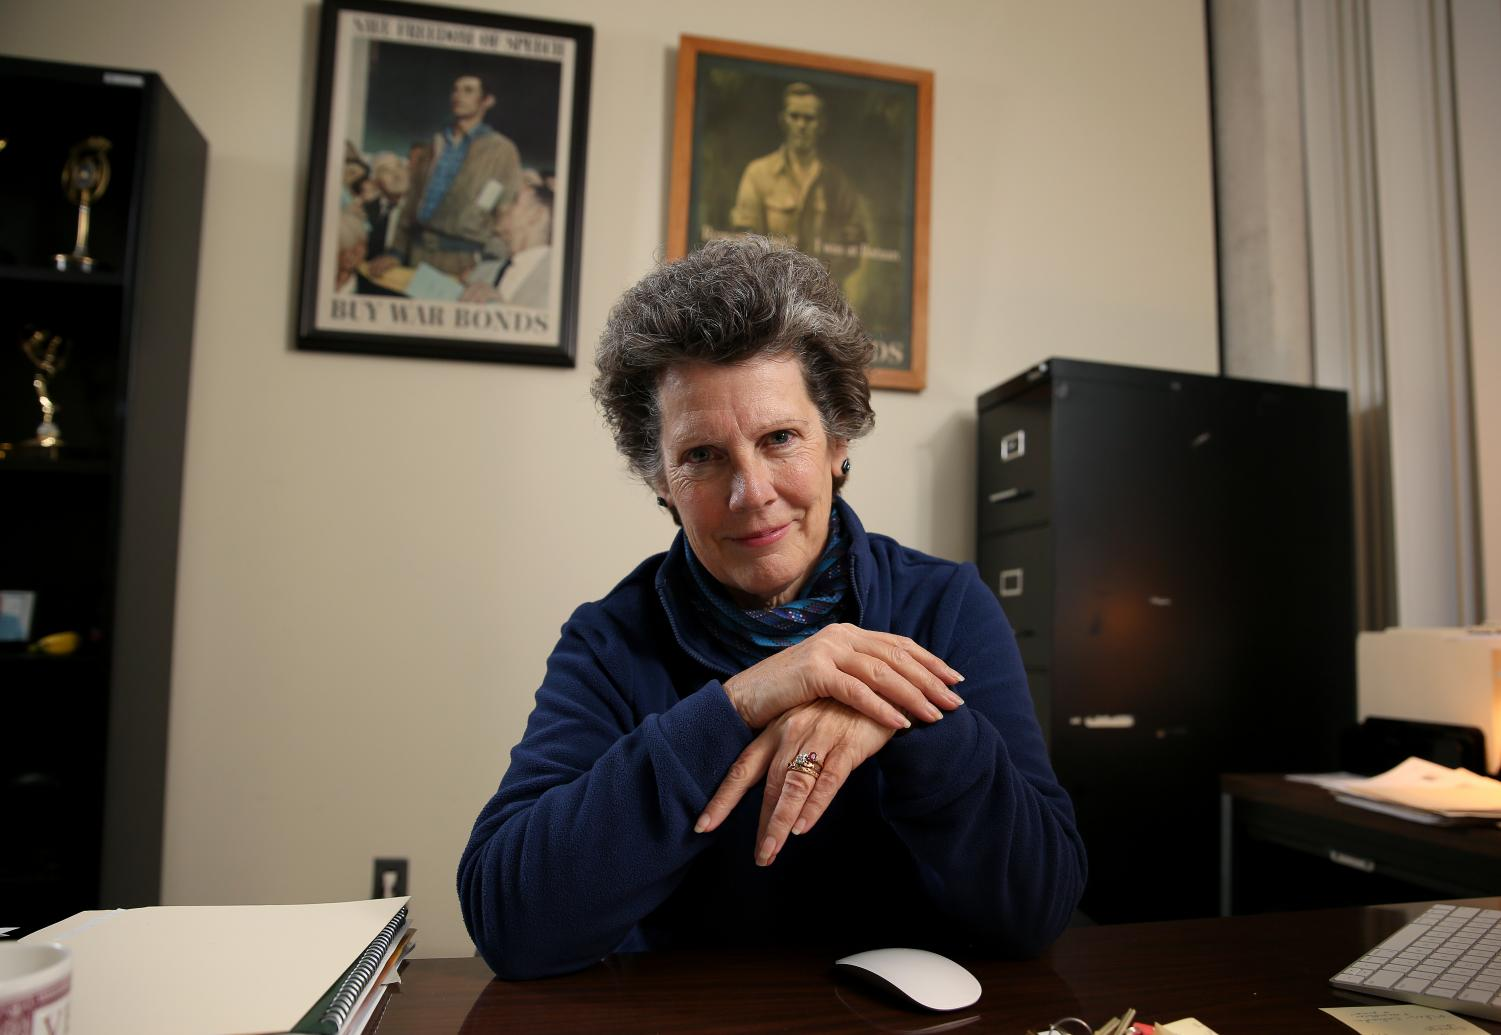 Janice Thompson, Director of the Journalism Department, in her office on Monday, January 13, 2020, at the Southern Illinois University campus, Carbondale, Illinois.